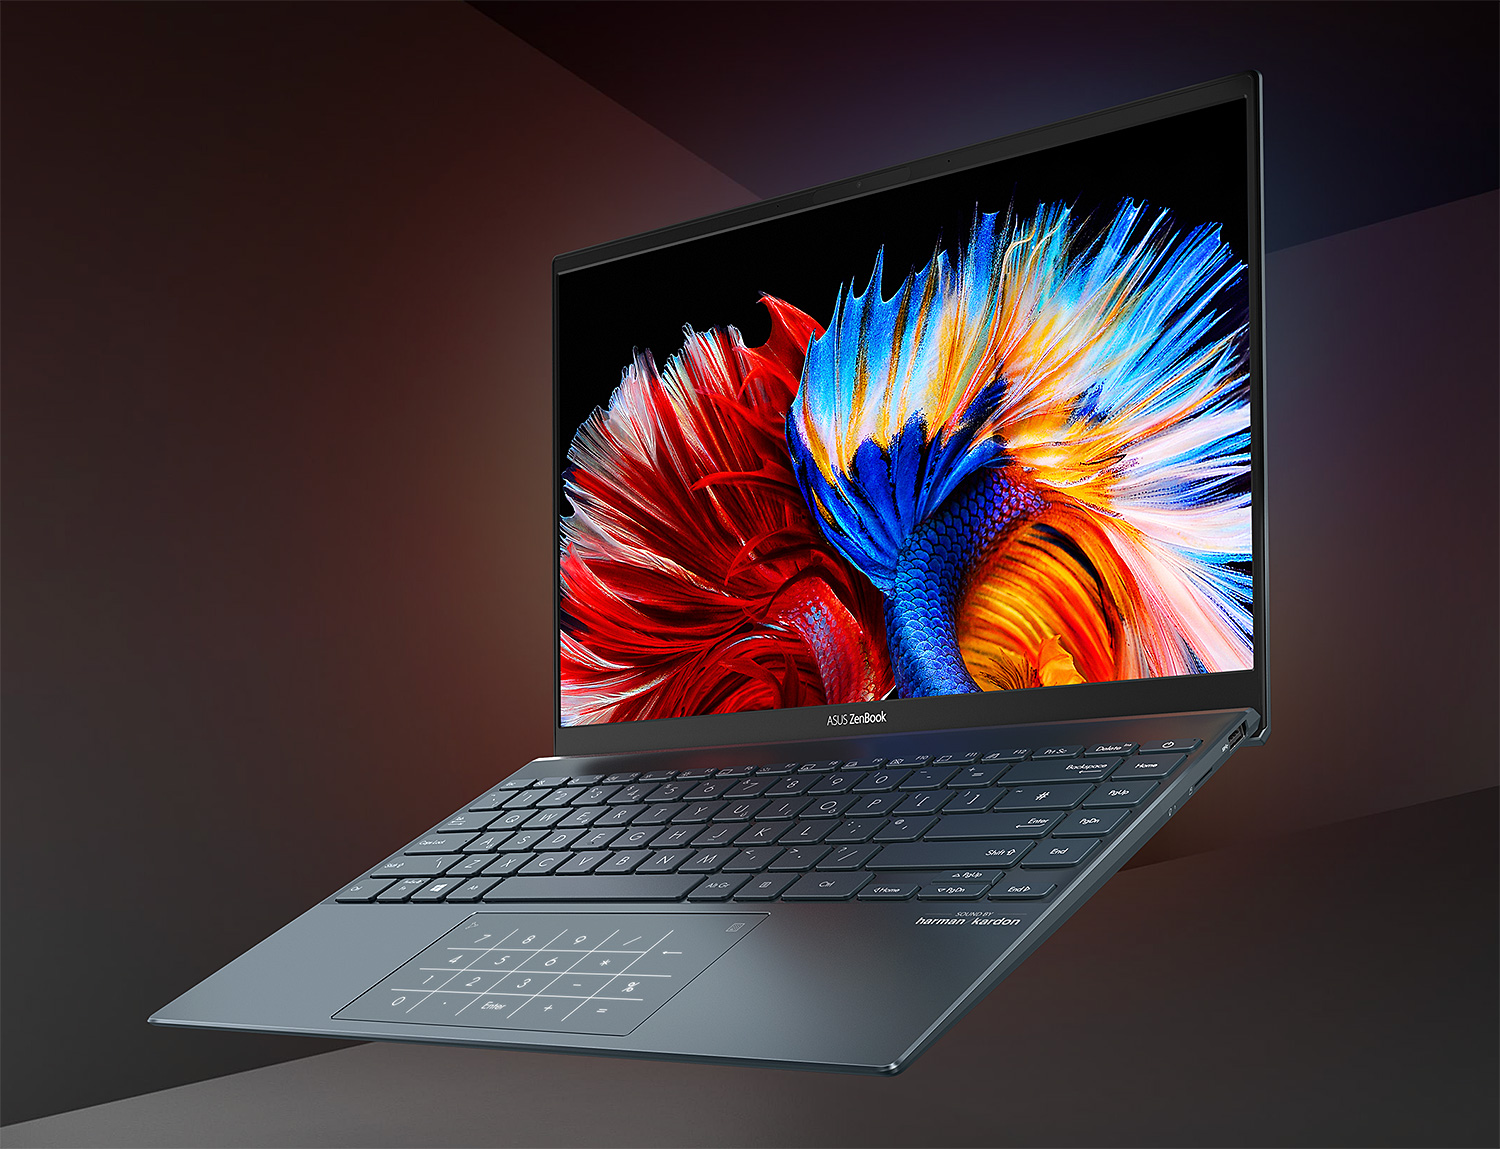 The New Asus Zenbook: OLED Display & Lighter Than Air at werd.com